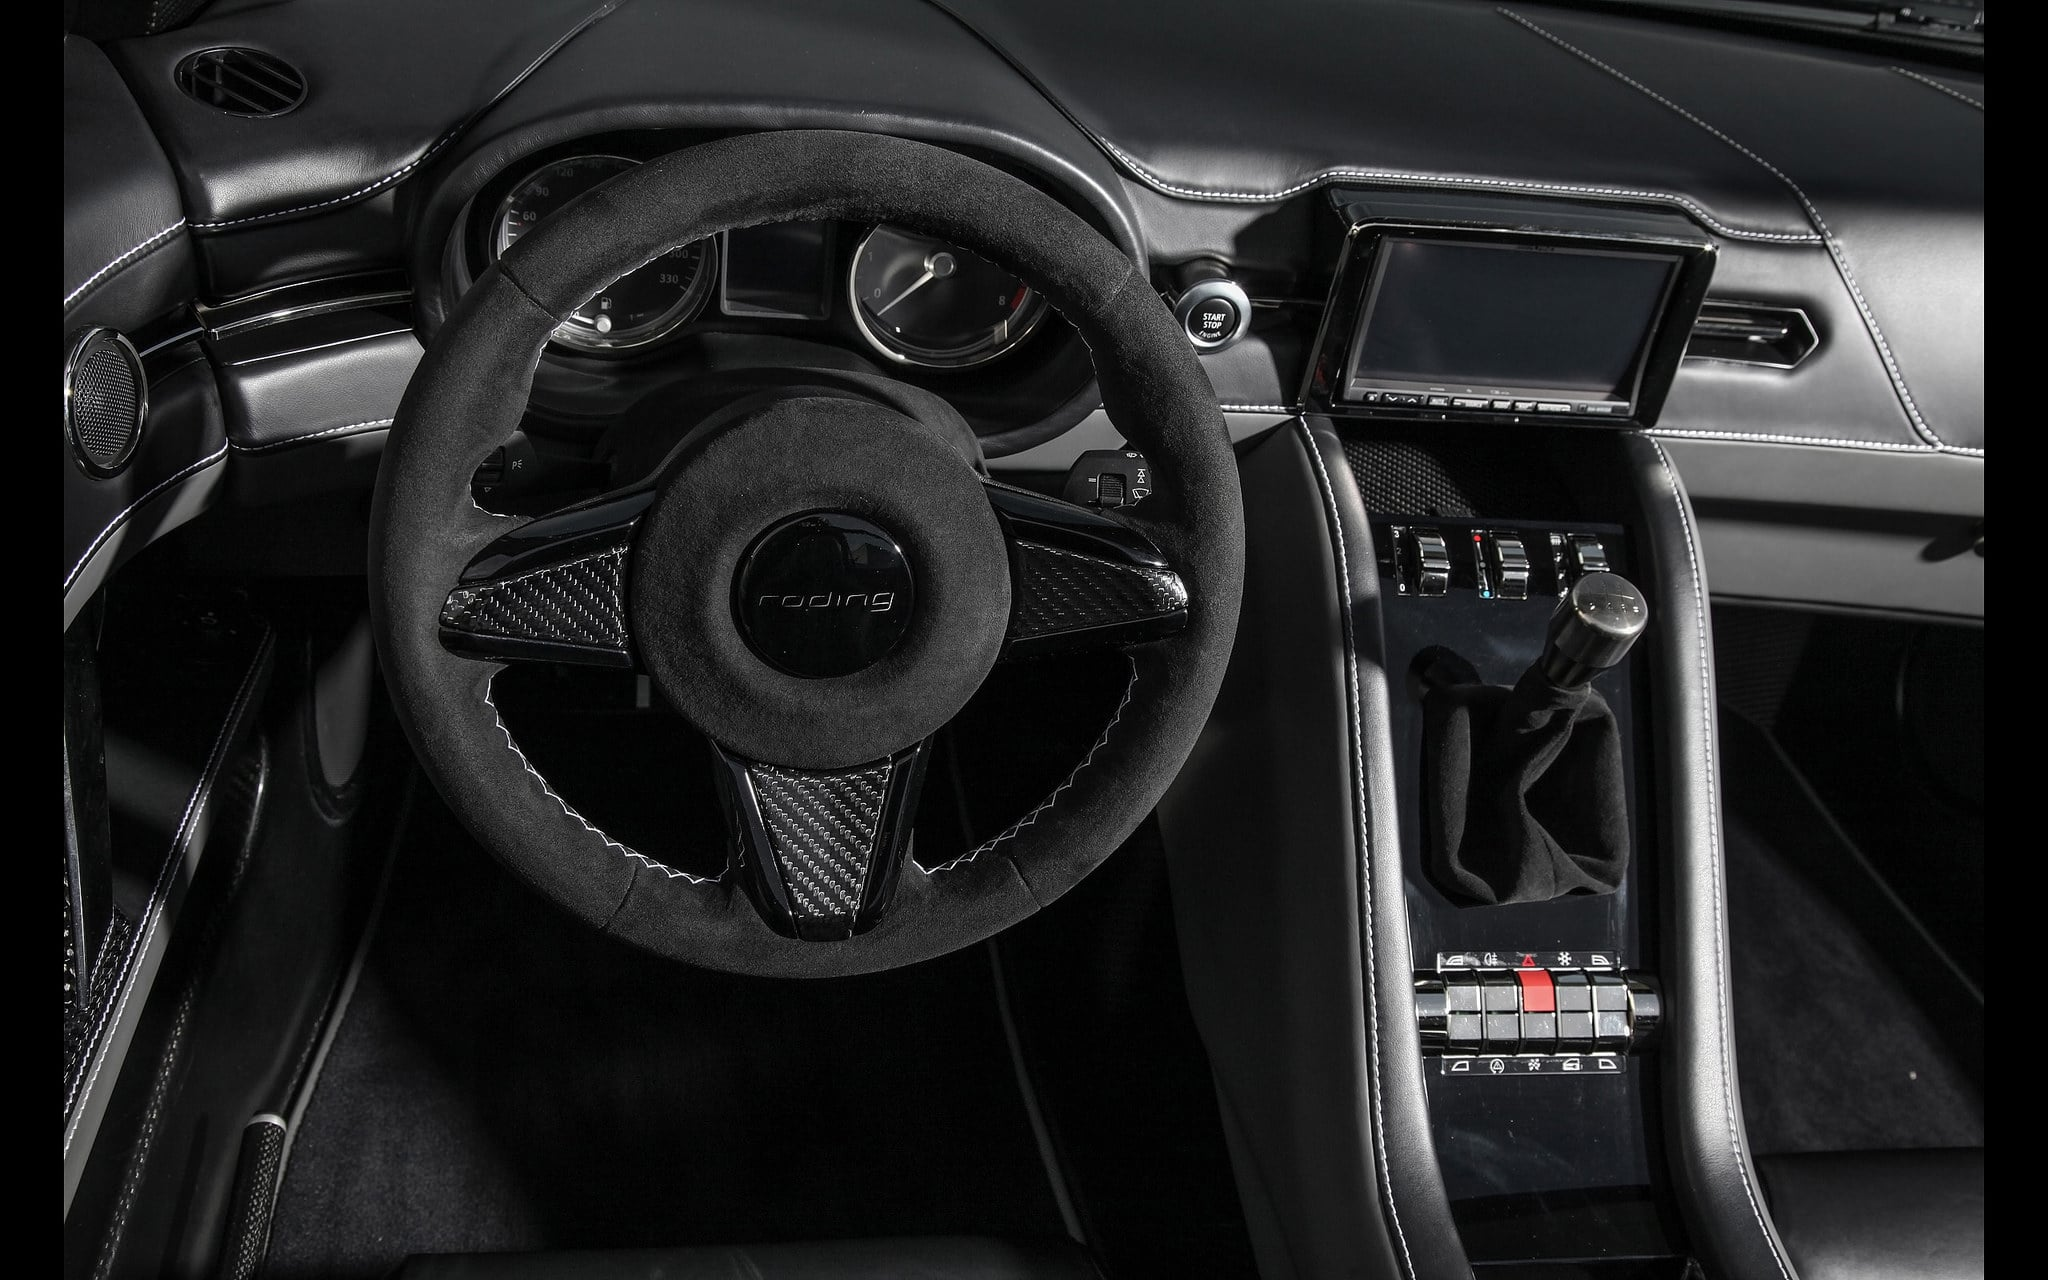 Roding Roadster interior free download